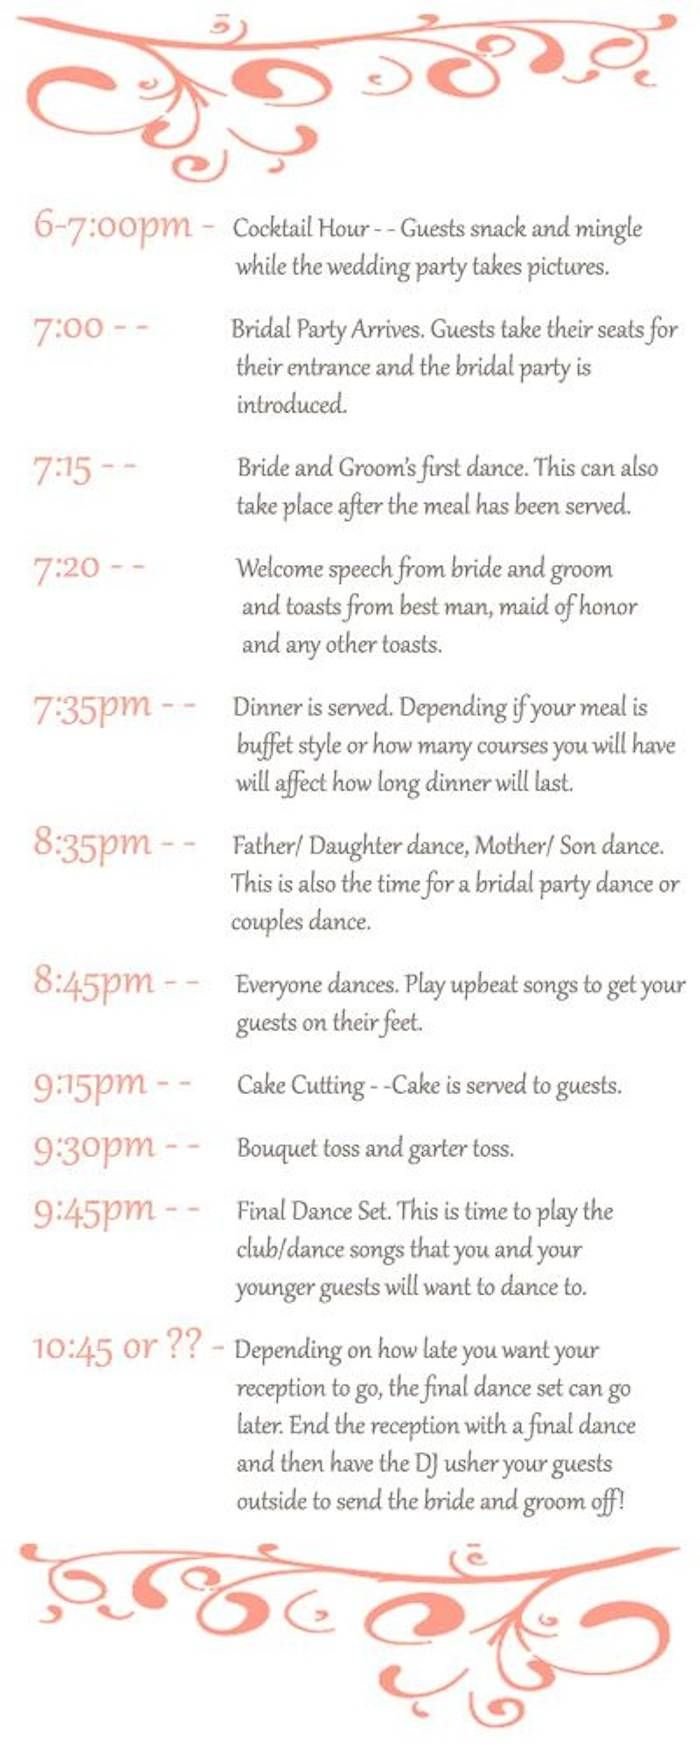 Timeline For Wedding Reception With Buffet Deweddingjpg